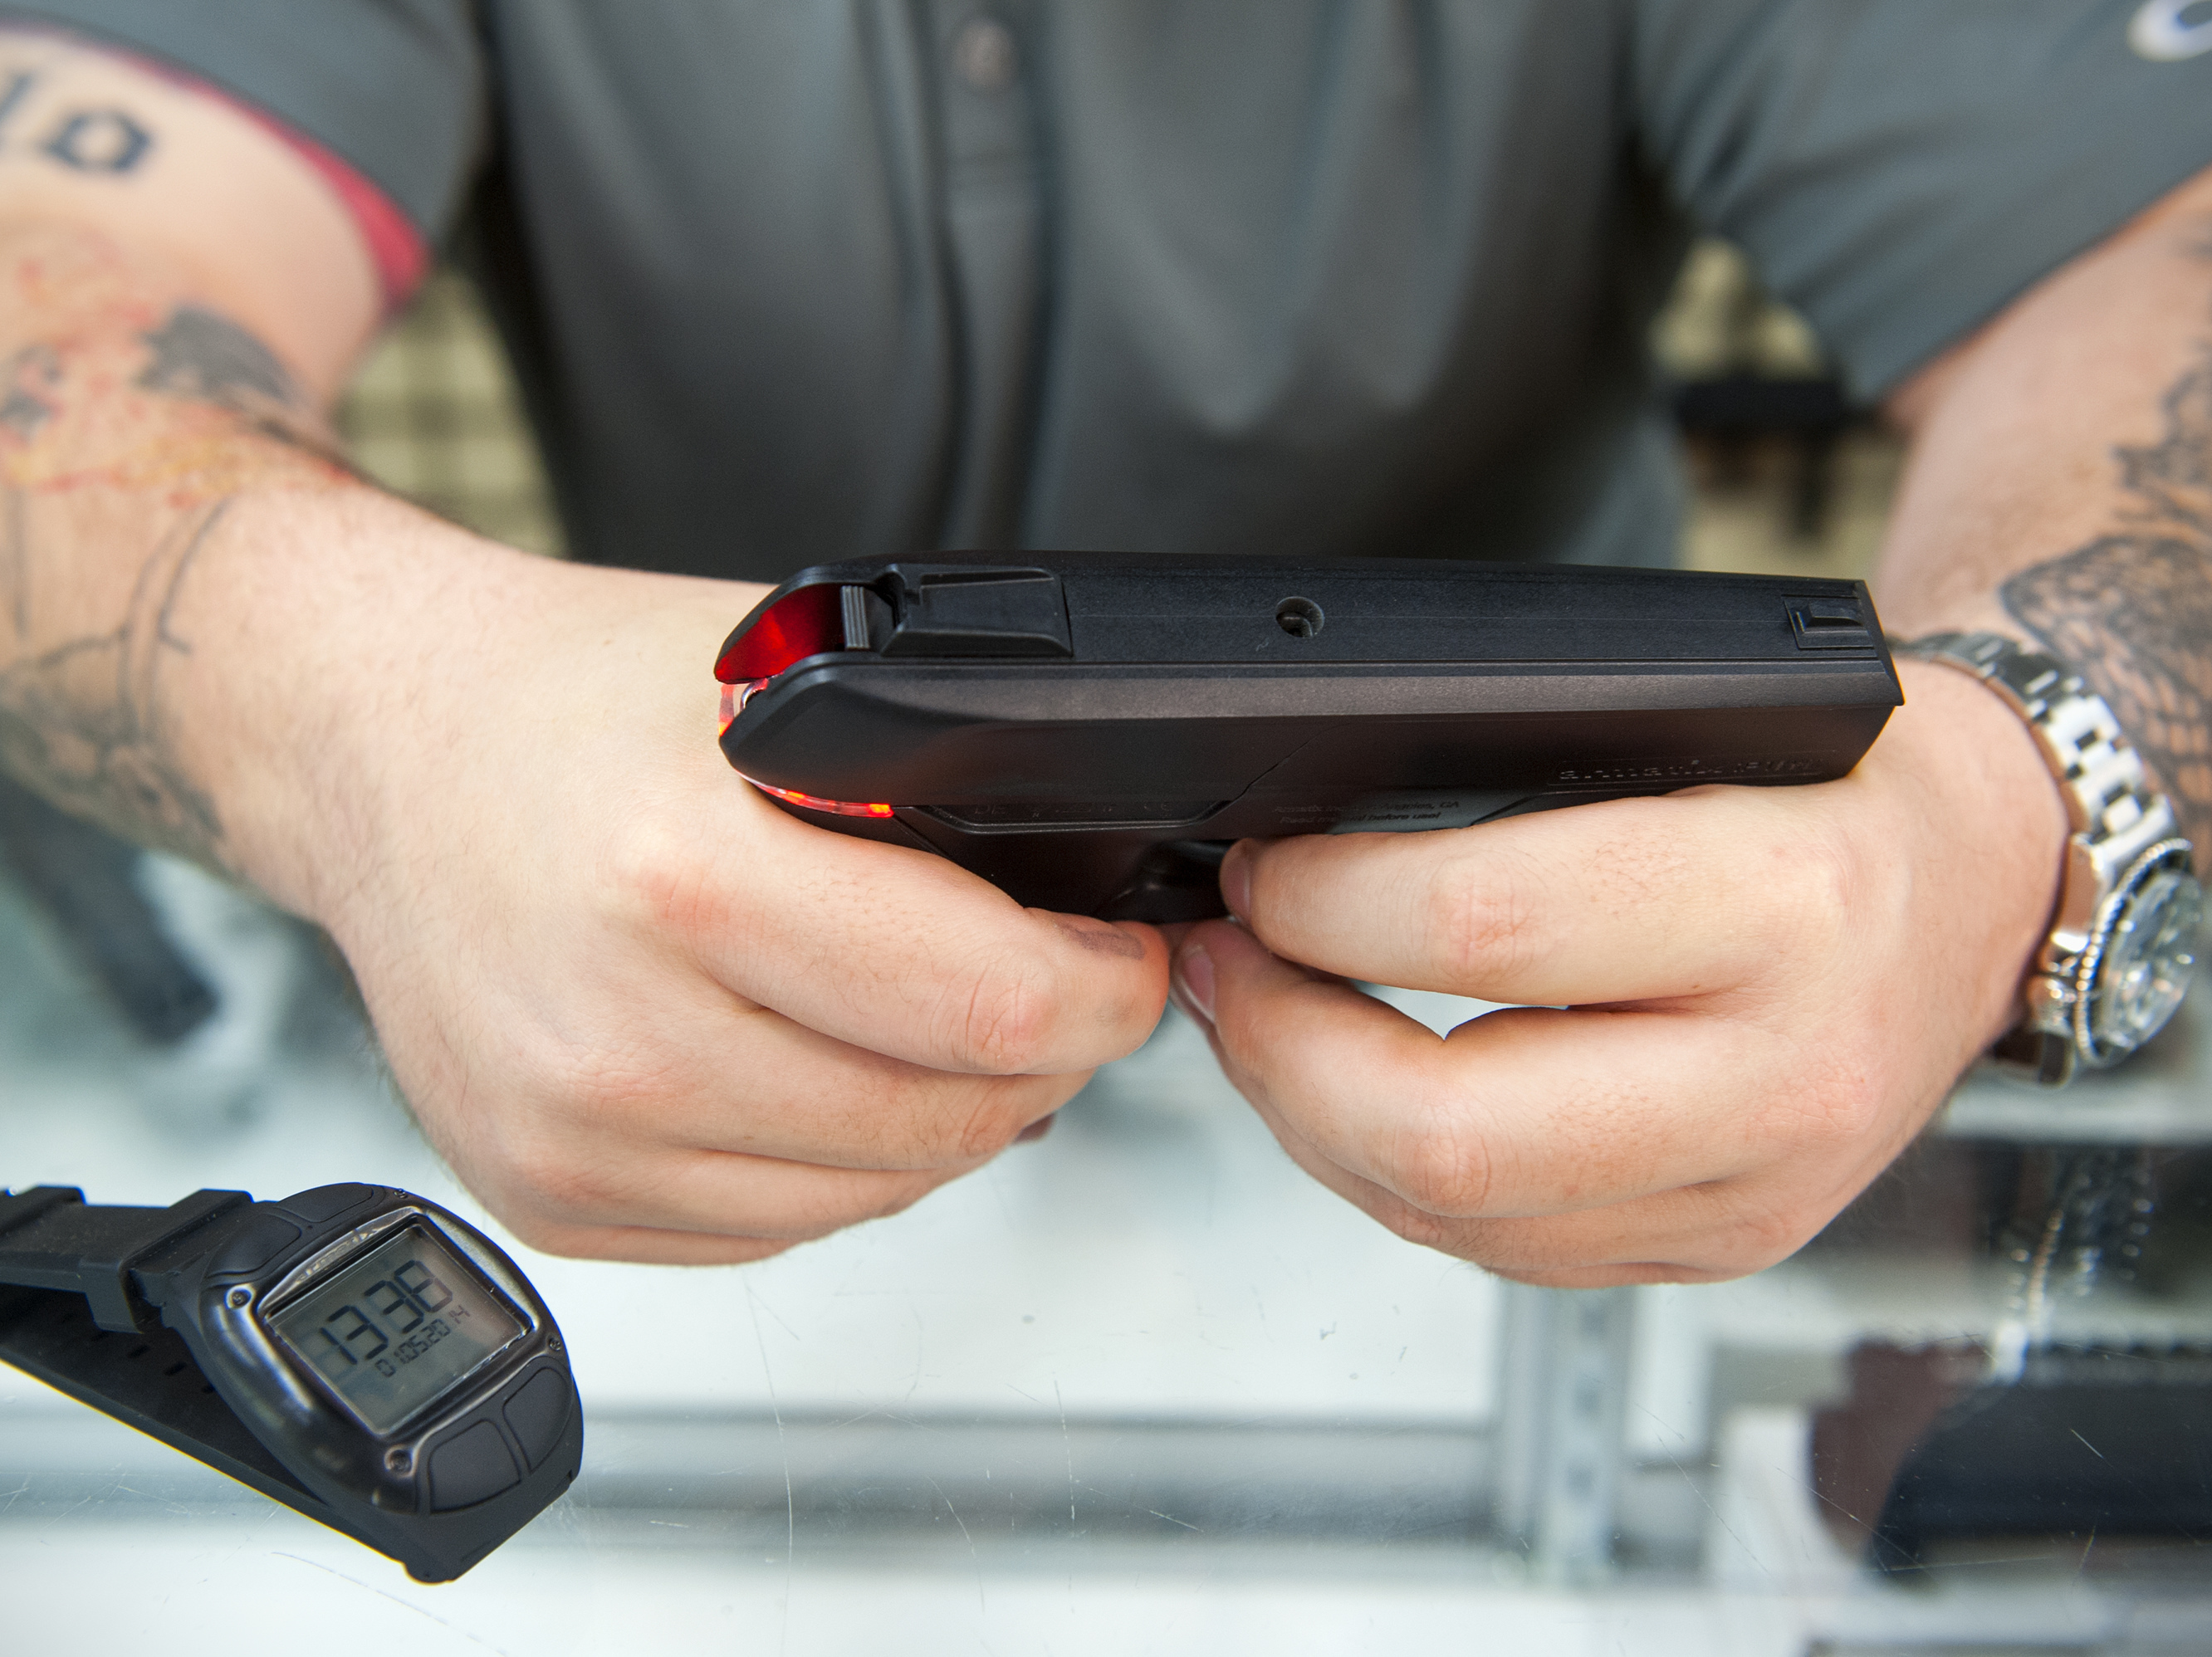 Andy Raymond demonstrates the Armatix iP1, a .22-caliber smart gun that has a safety interlock, at Engage Armaments in Rockville, Md., last year. Katherine Frey/The Washington Post/Getty Images